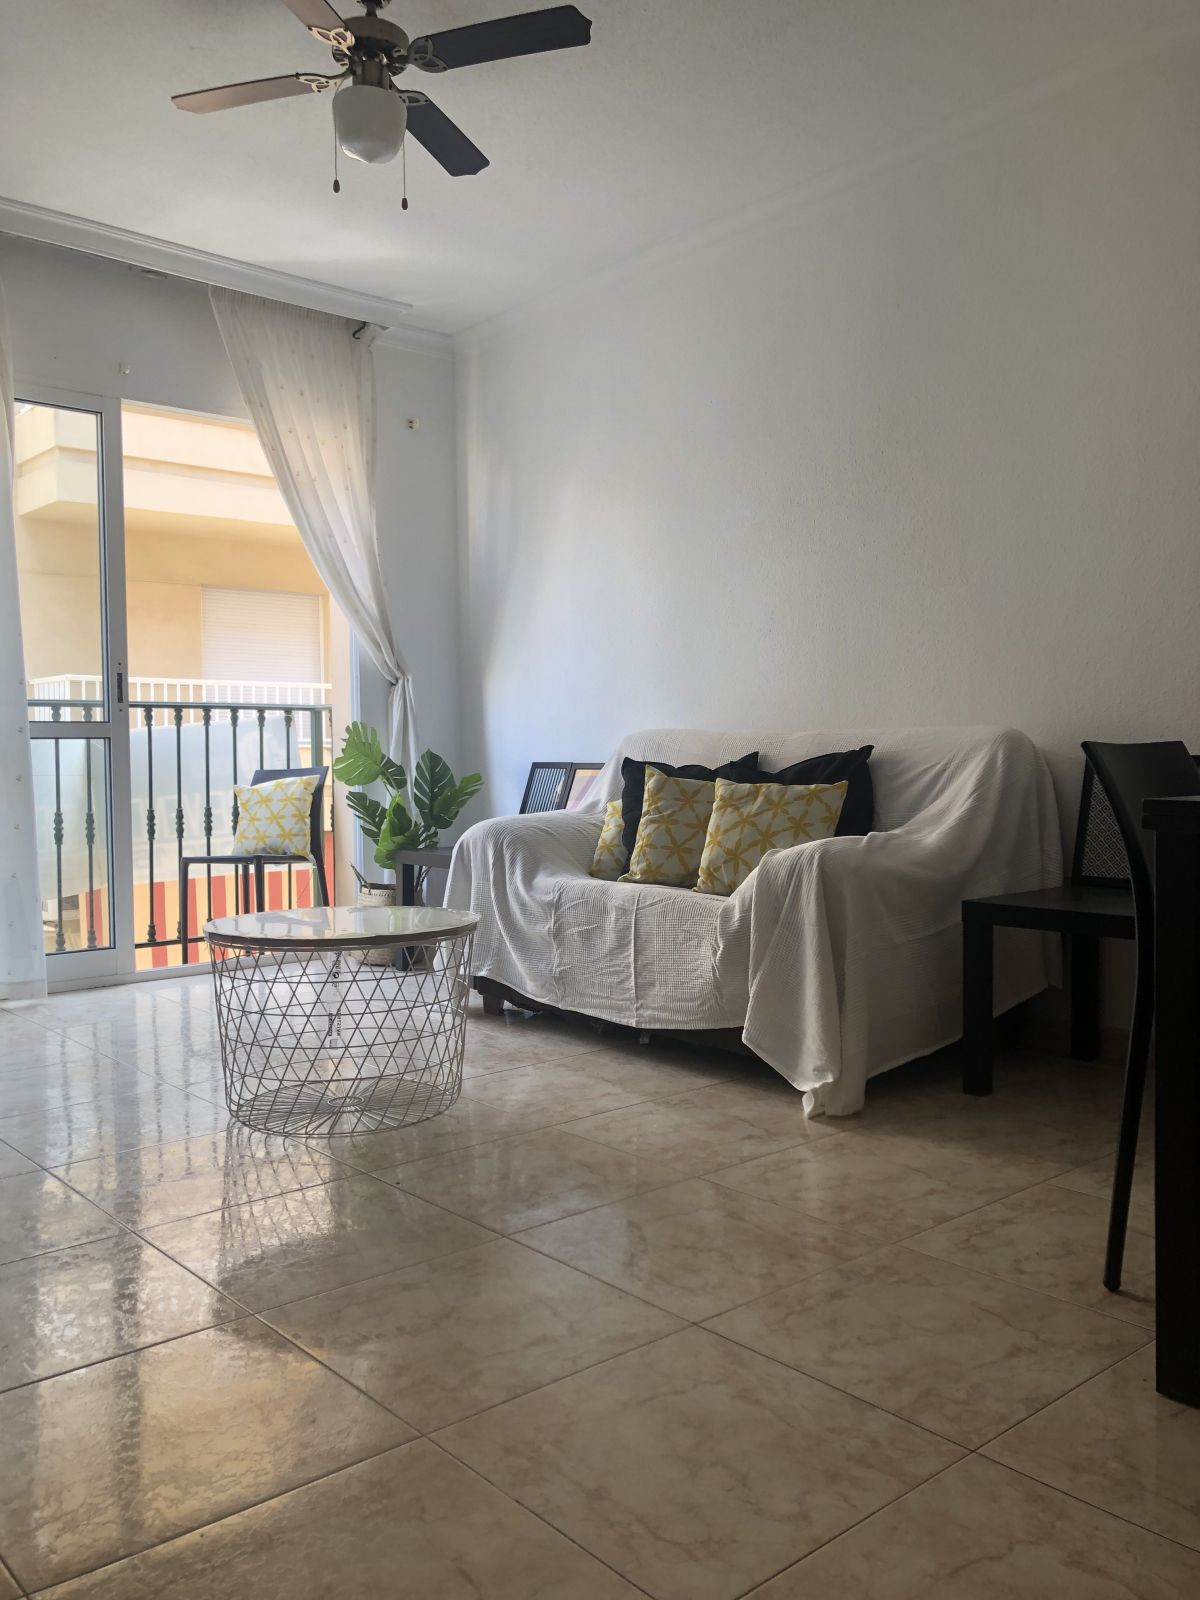 APARTMENT IN THE CENTRE OF FUENGIROLA, CLOSE TO SHOPPING AREAS AND LEISURE, TO LESS THAN 5 MINUTE WA,Spain